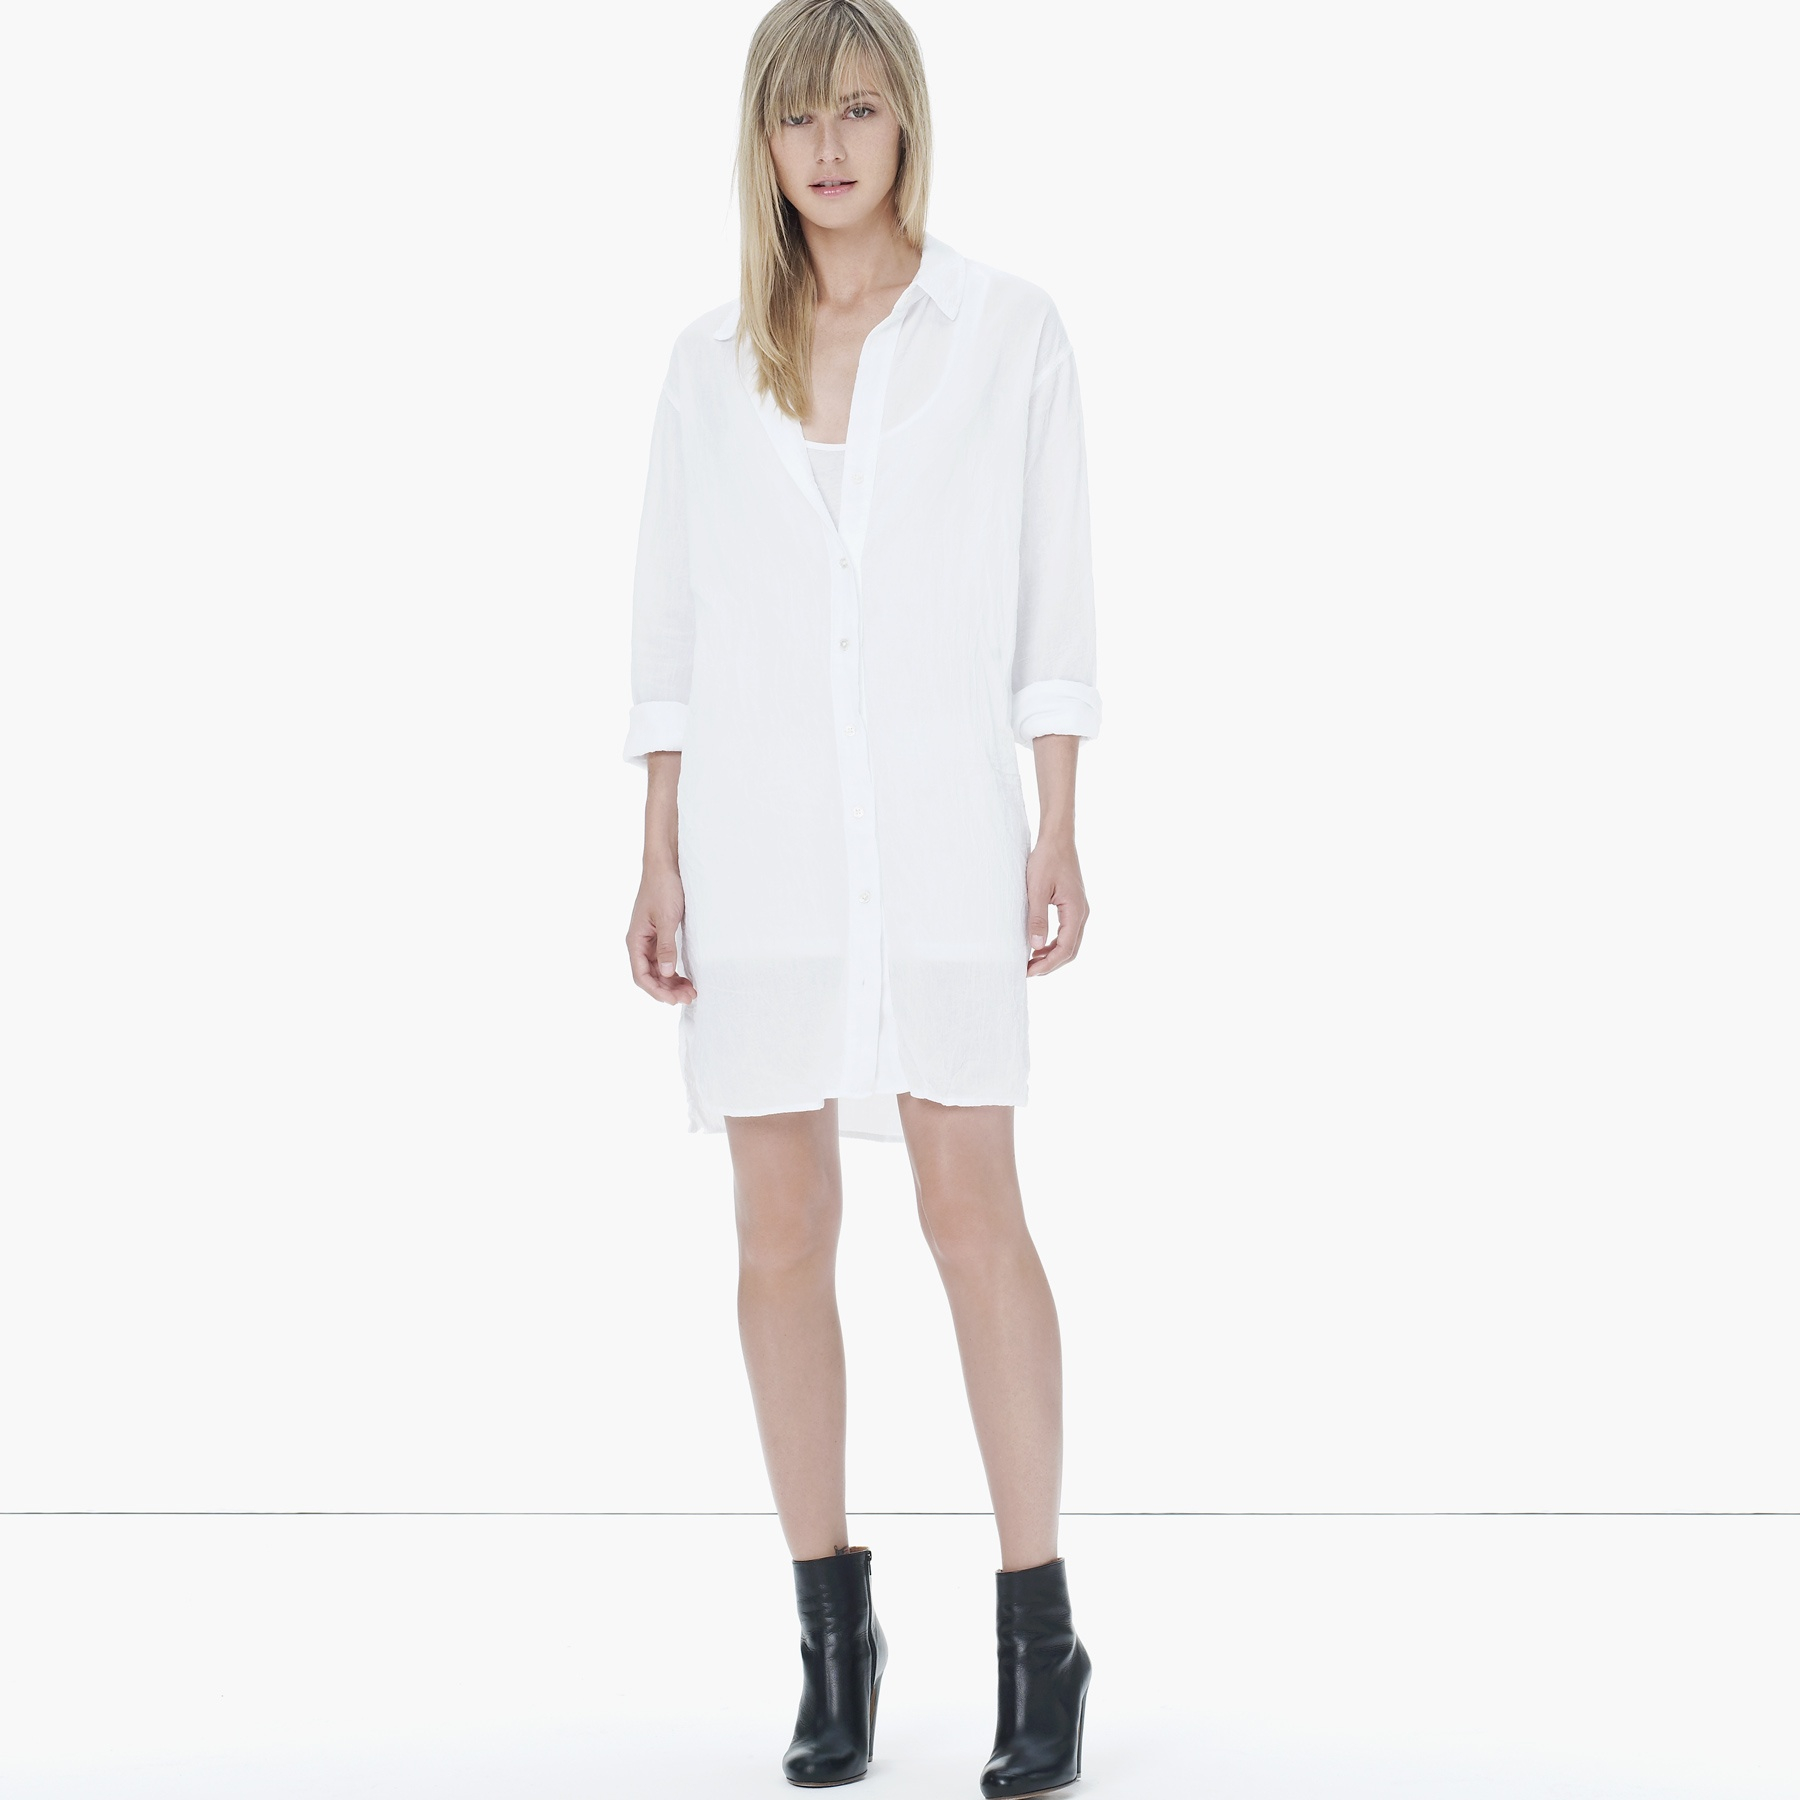 6359f40c91 James Perse Gauze Cotton Shirt Dress in White - Lyst